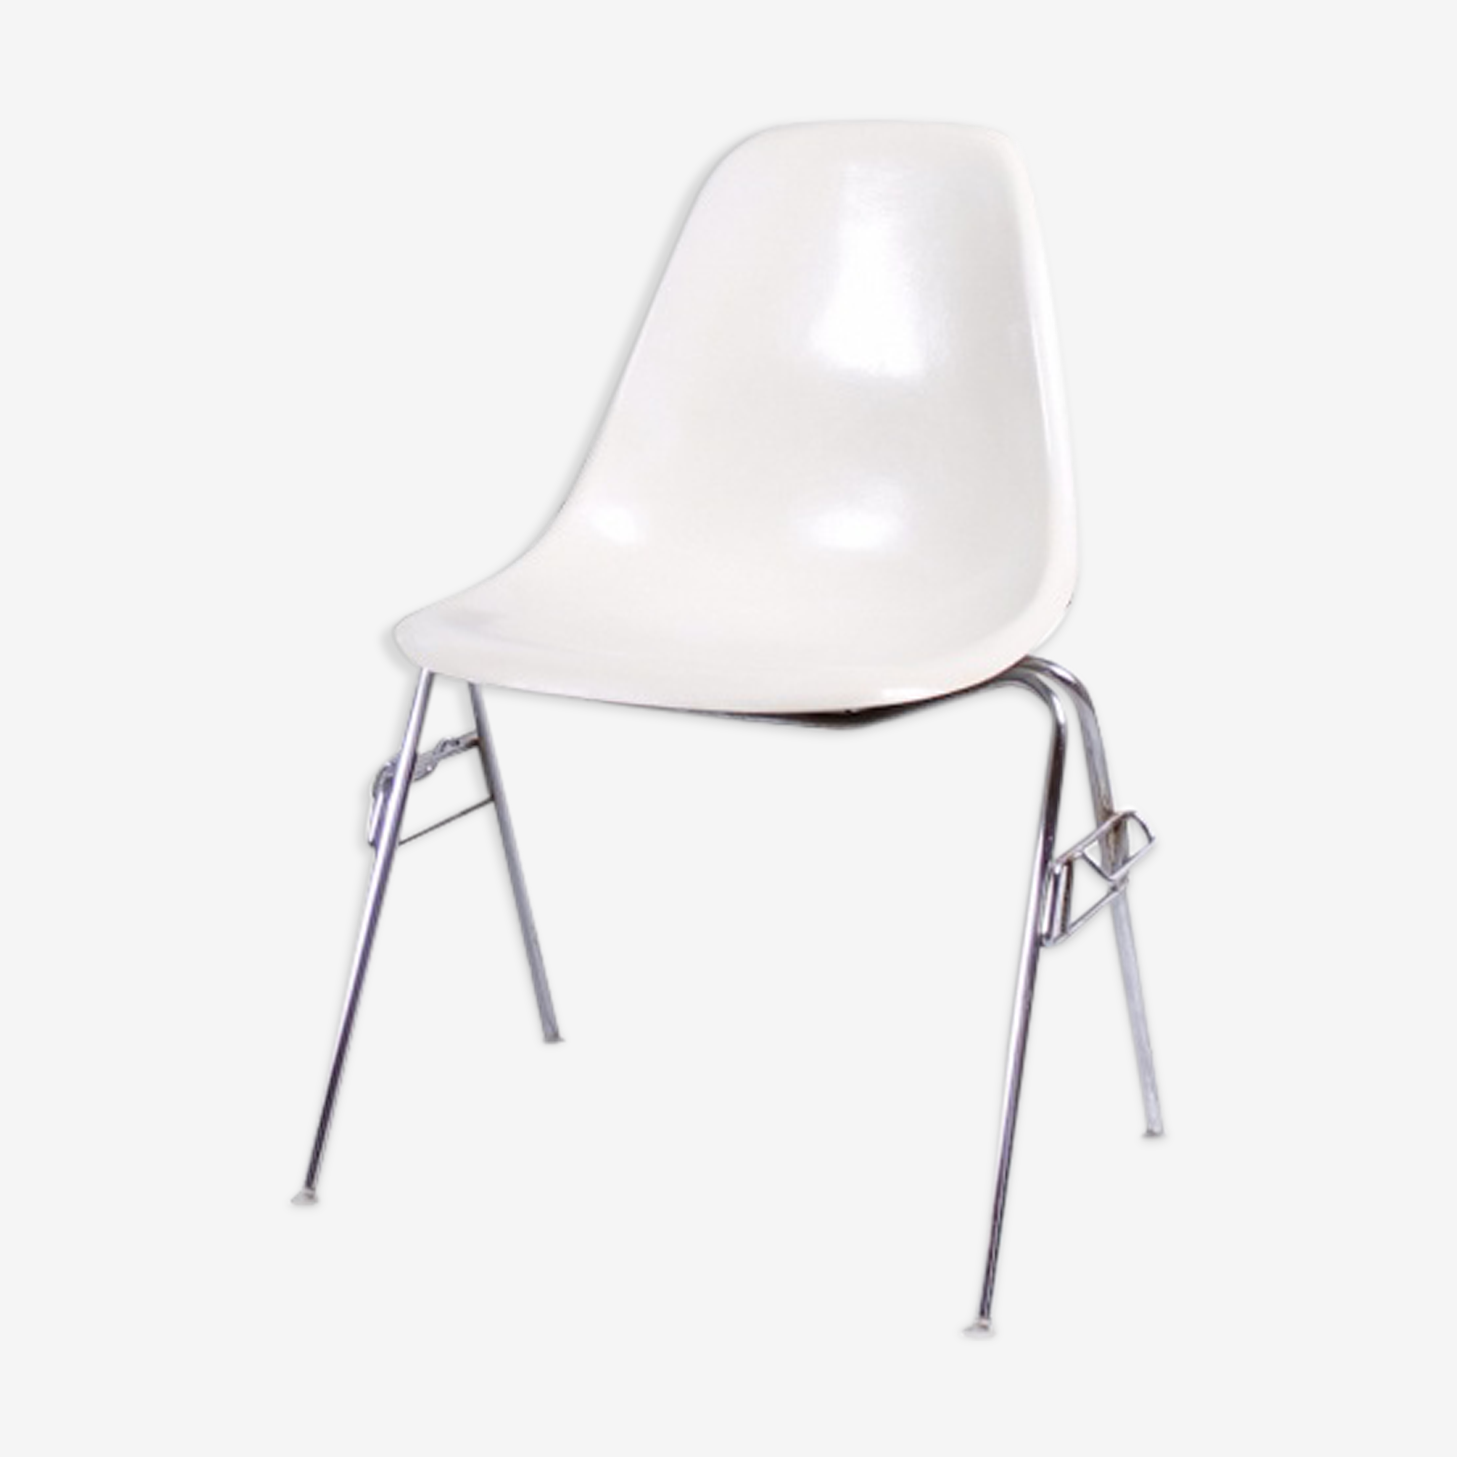 Chair DSS Fiberglass by Charles & Ray Eames for Herman Miller